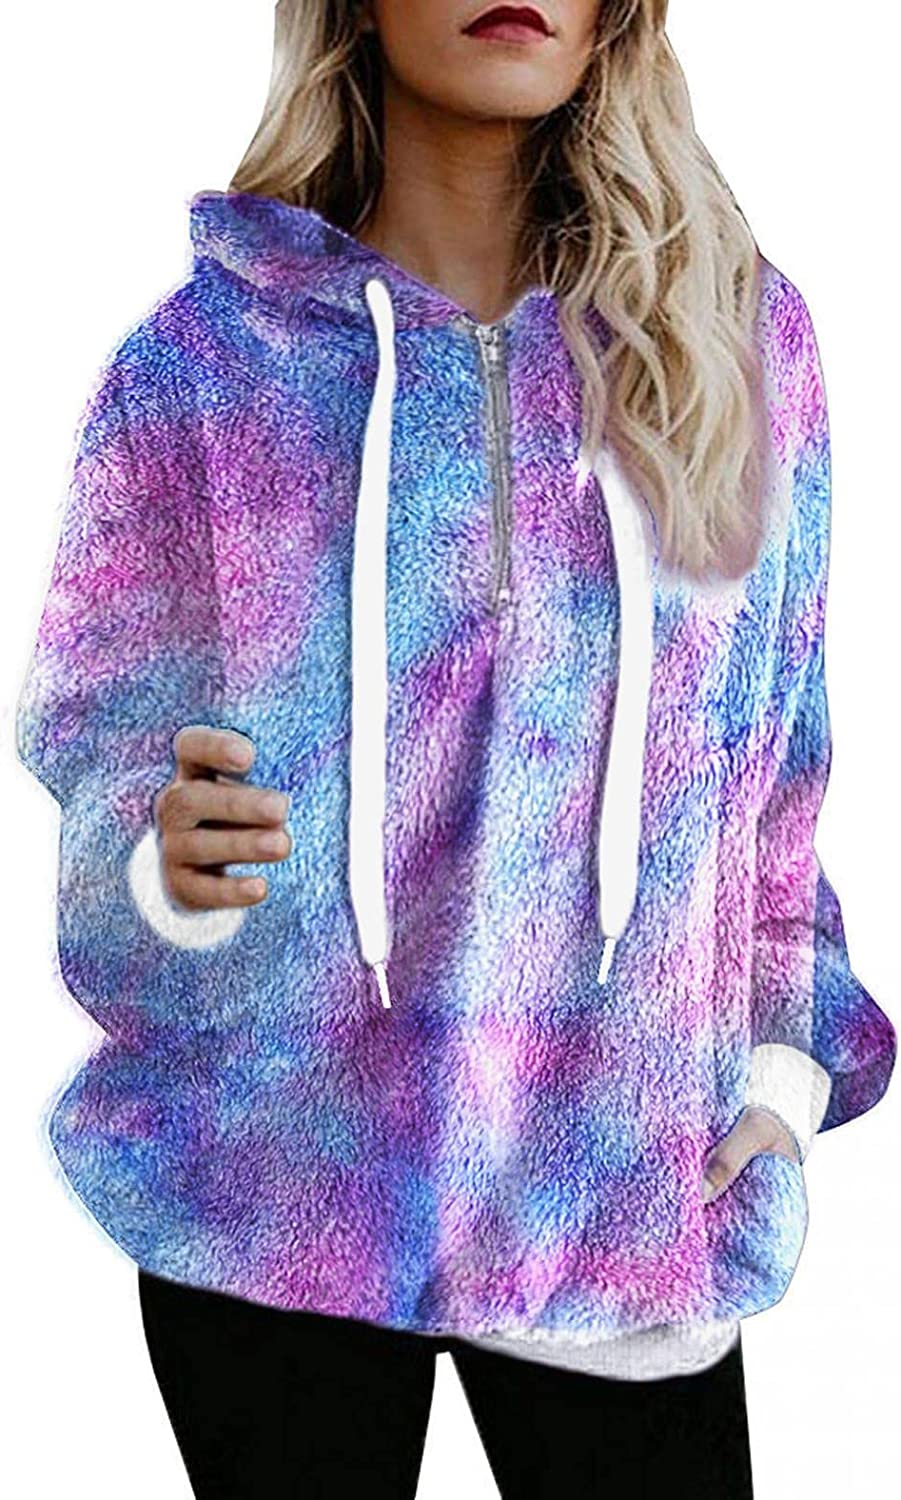 Jaqqra Hoodies for Women, Womens Fuzzy Fluffy Oversized Sweatshirts Jacket Sherpa Pullover Tops Sweater Coat with Pocket